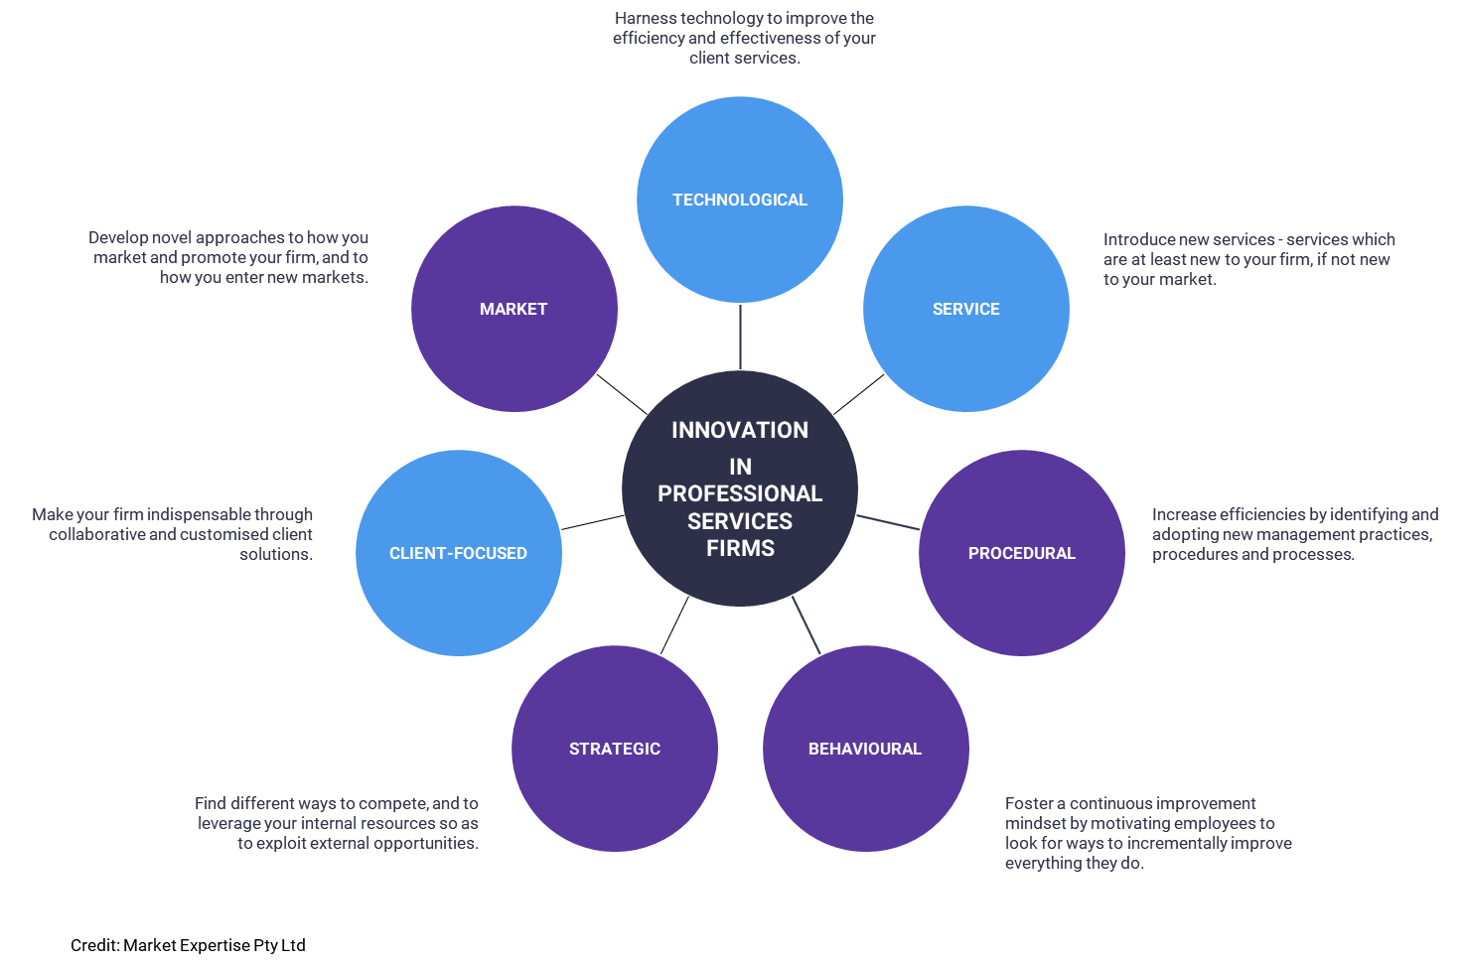 In professional services firms, there are seven dimensions of innovation